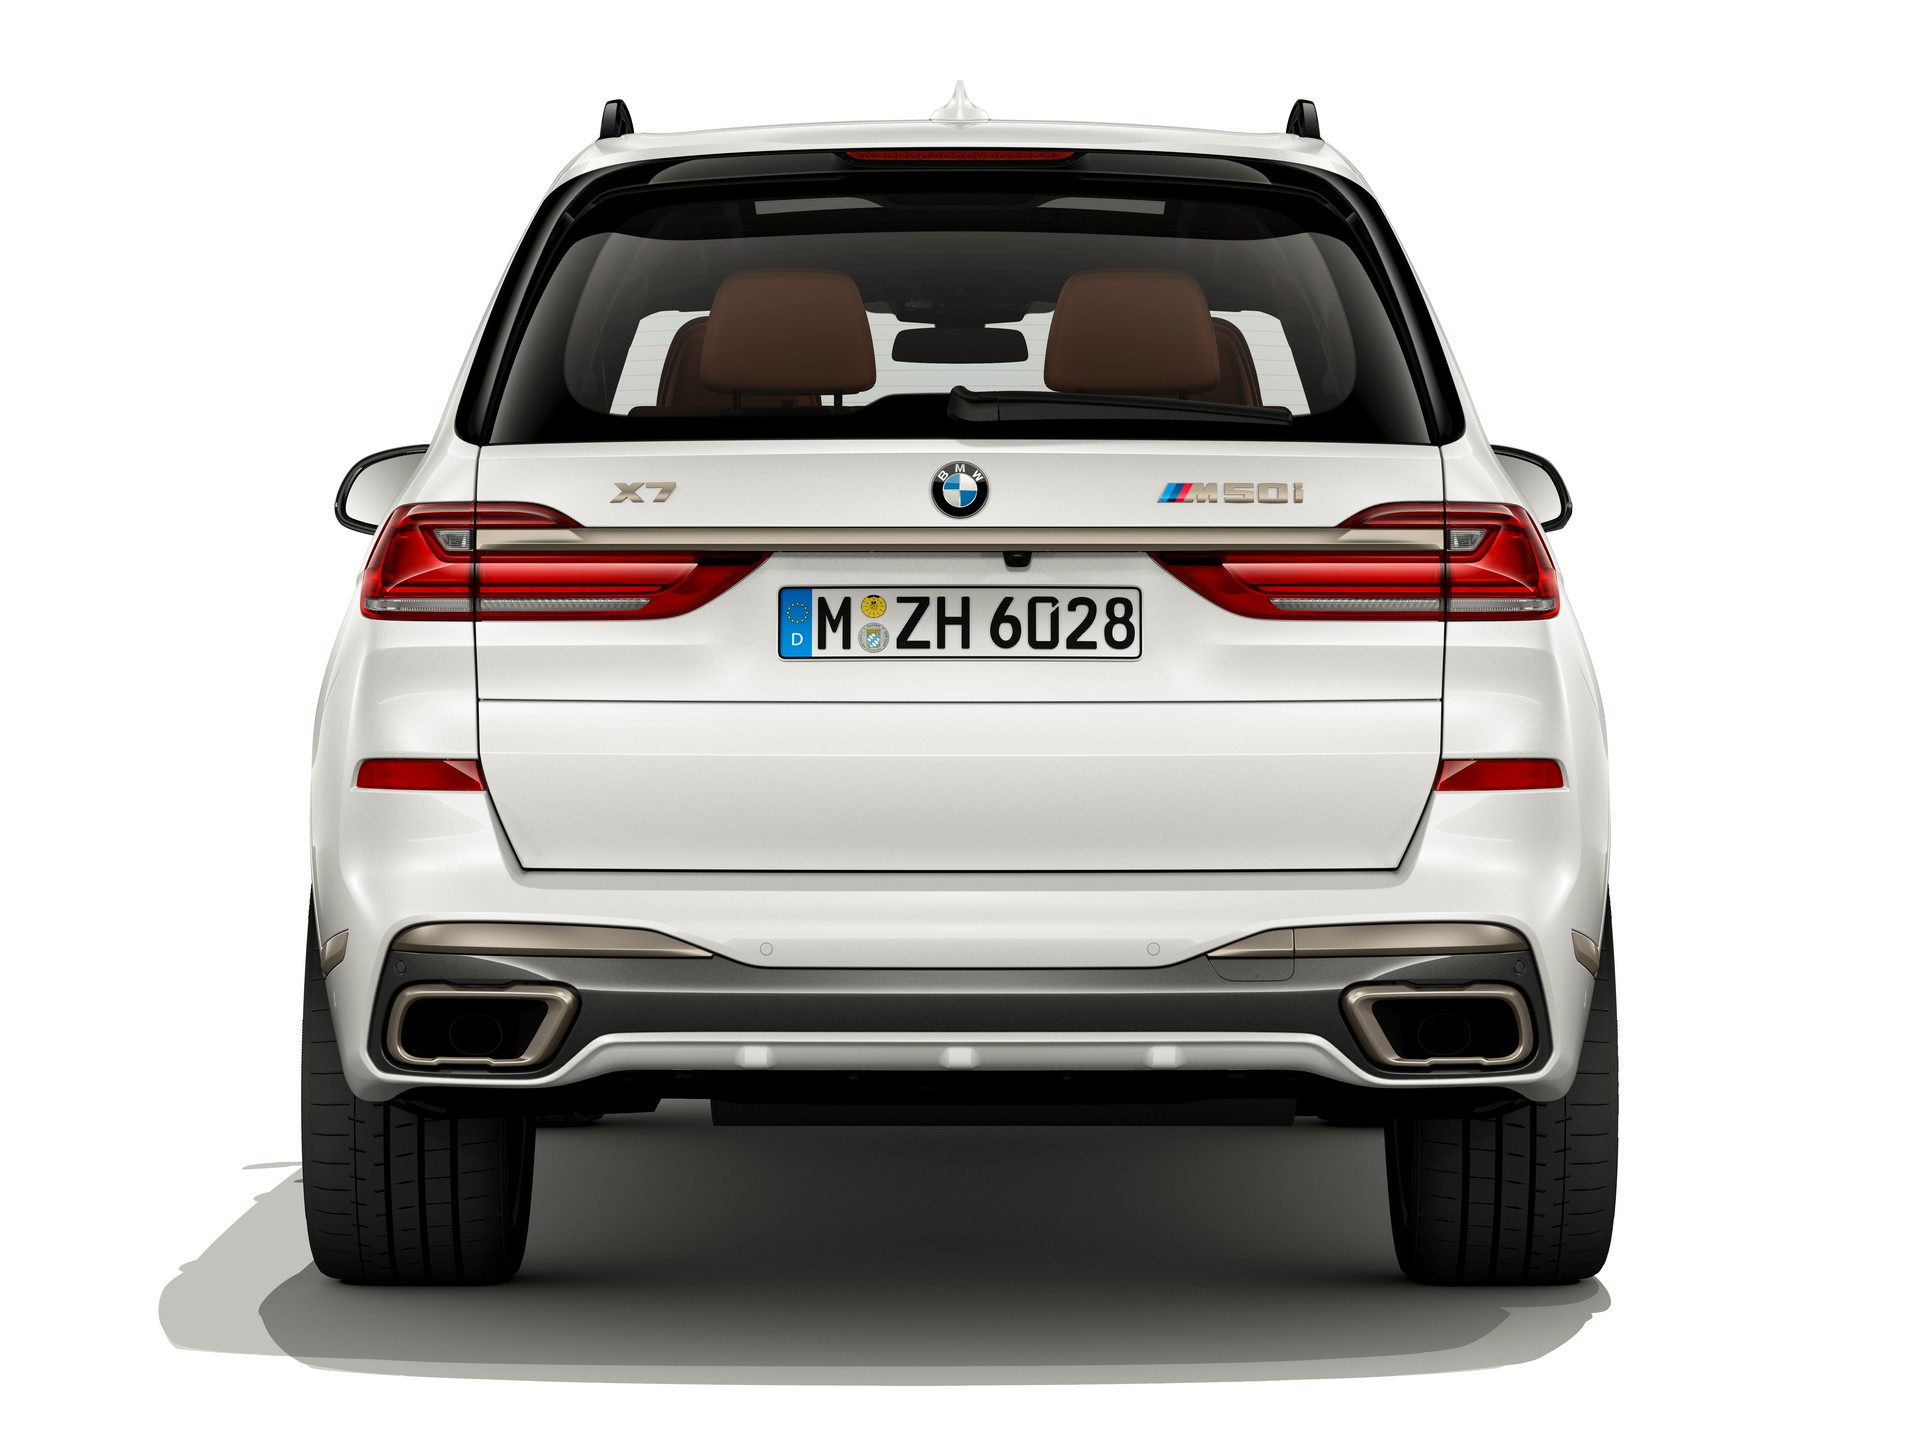 BMW X5, X7 get M50i powertrain with 523 horsepower